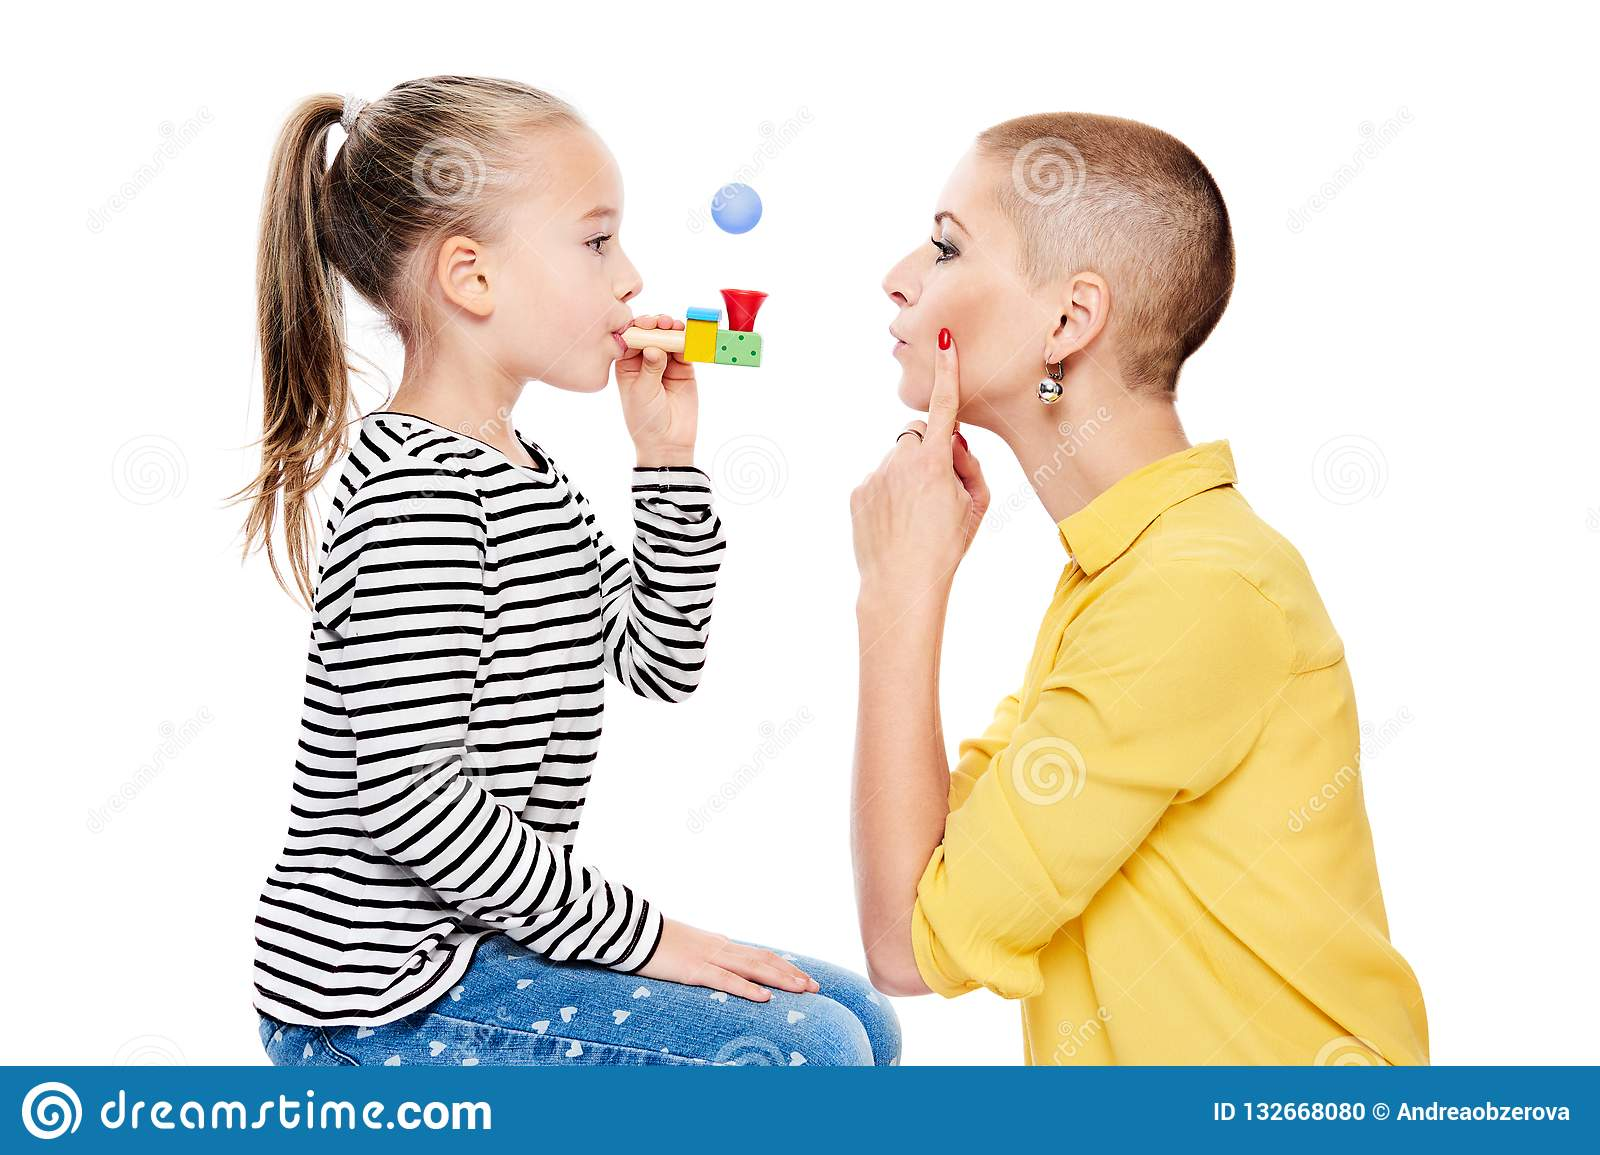 Cute young girl with speech therapist making special exercises at speech therapy office. Child speech therapy concept on white.